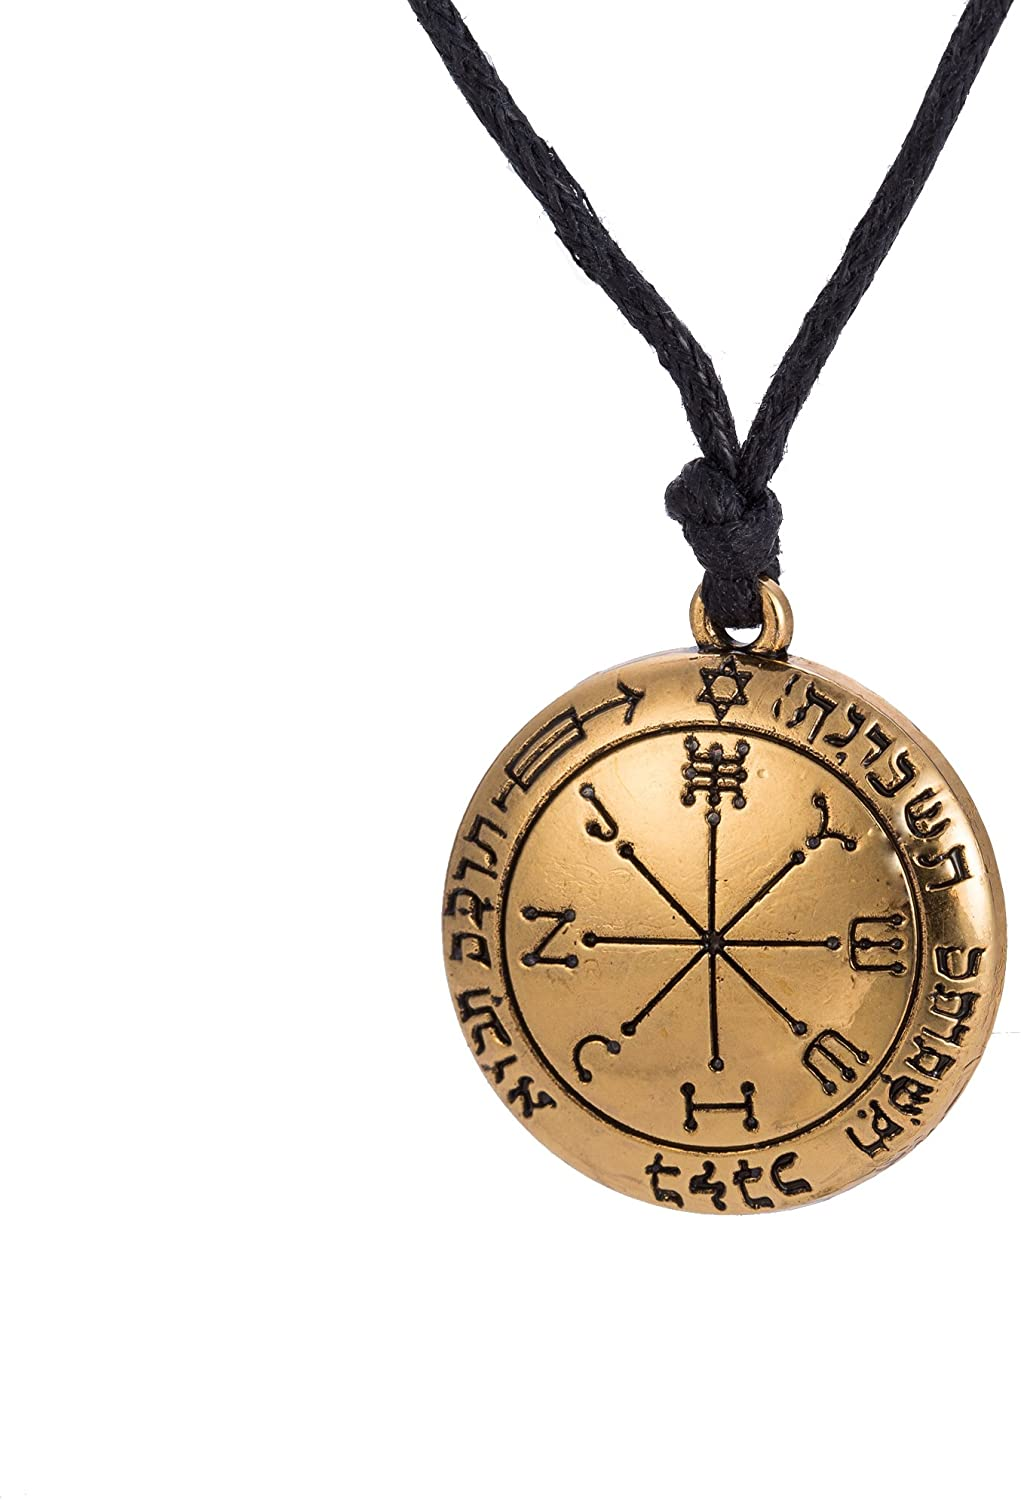 LIKGREAT Solomon The Sixth Pentacle of Mars Pendant Necklace Talisman Amulet Vintage Jewelry